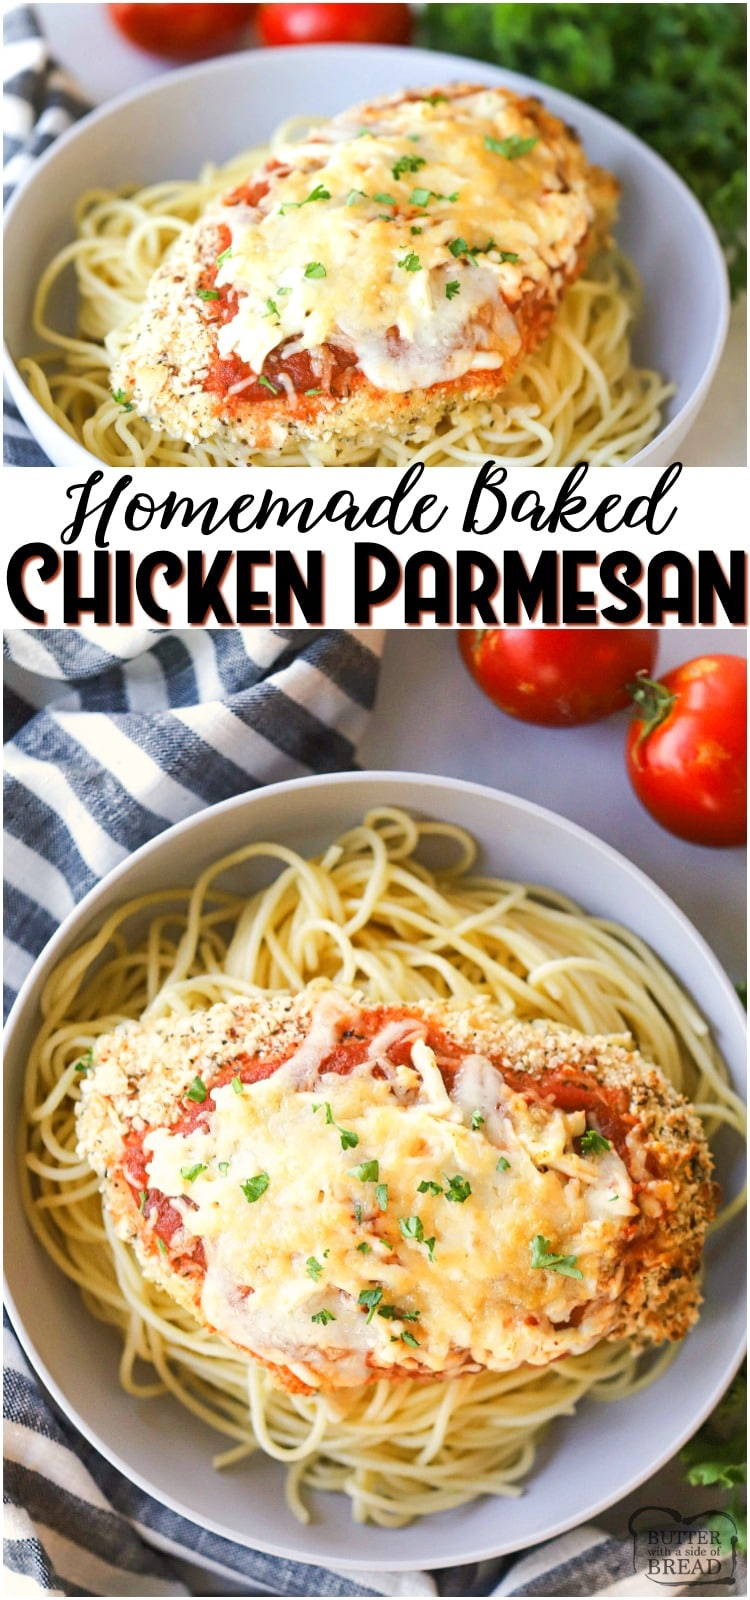 Baked Chicken Parmesan recipe is a favorite for everyone in the family. Topped with parmesan cheese, this mouth watering easy chicken parmesan is a great dinner for any day of the week and any season of the year! #dinner #chickenparm #bakedchicken #chicken #easydinner #recipe from BUTTER WITH A SIDE OF BREAD